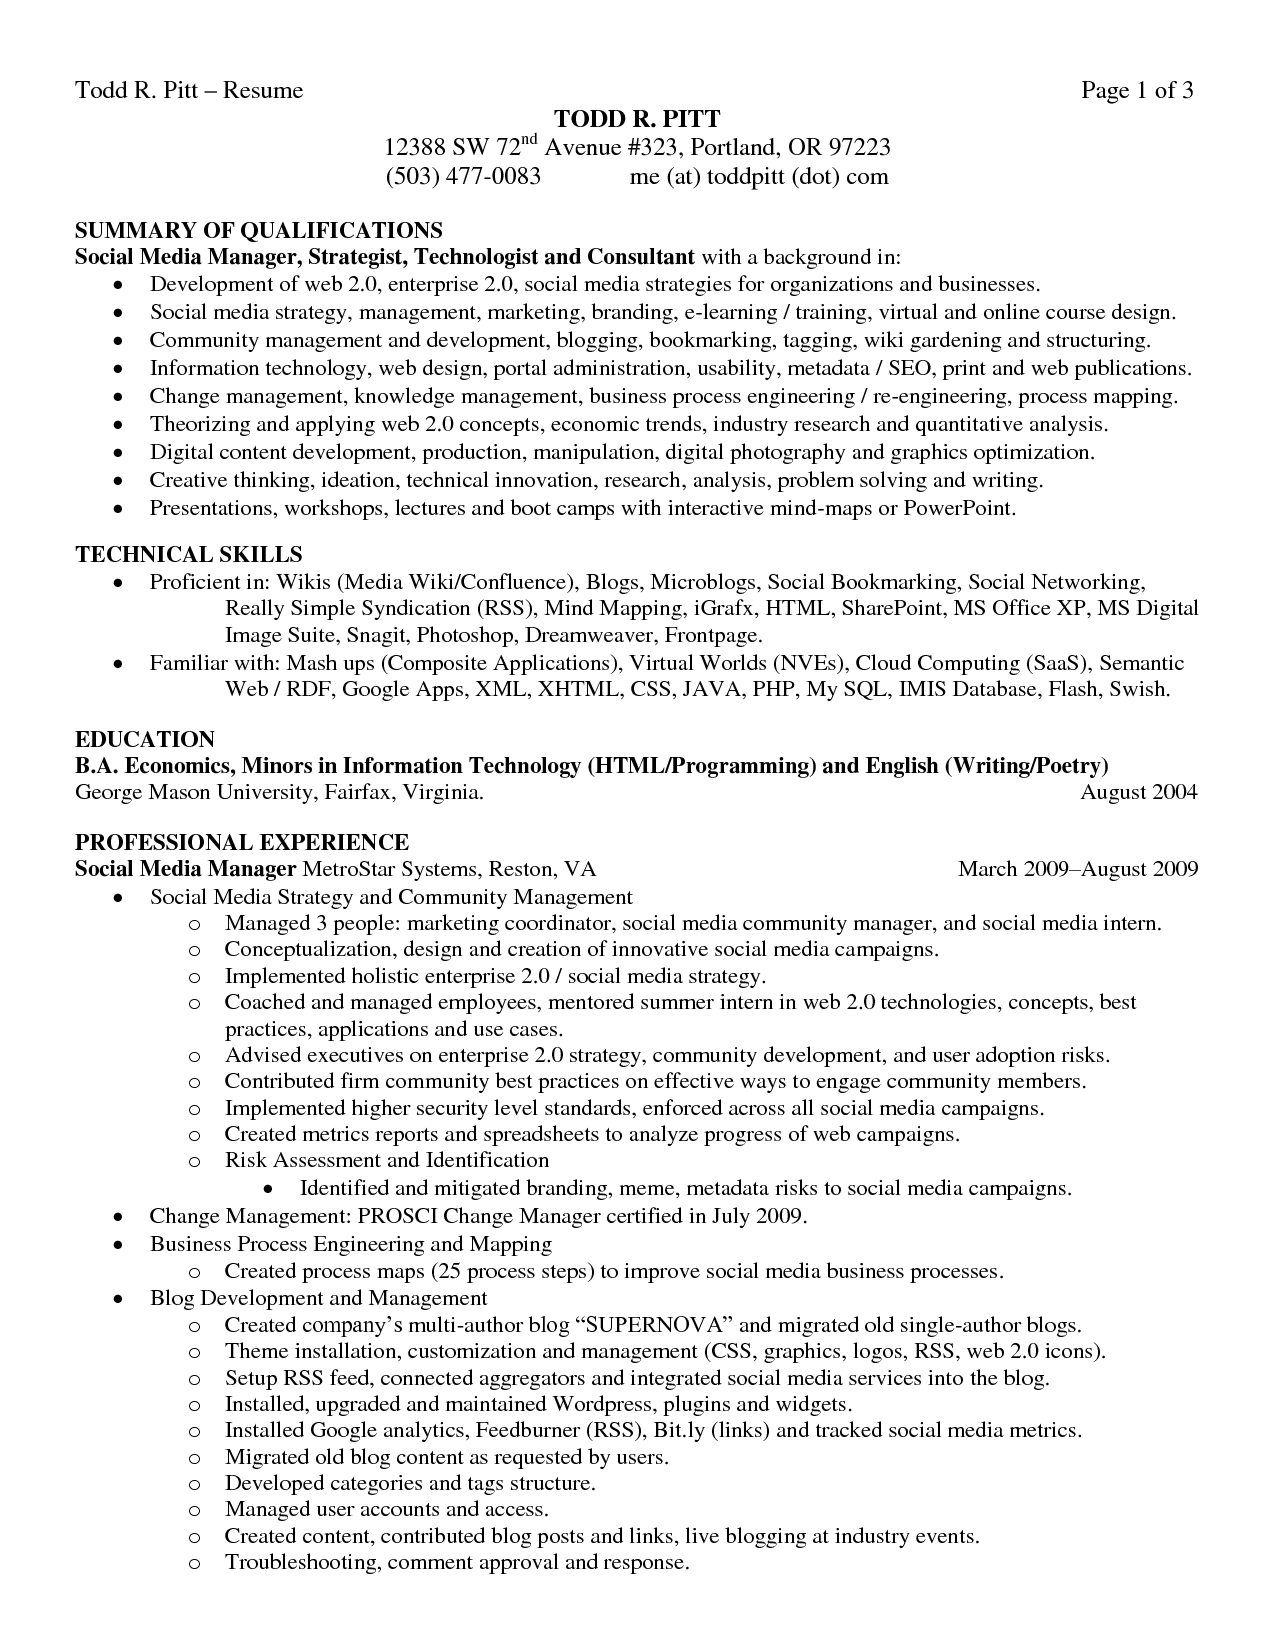 Samples Of Resume Summary Best Summary Of Qualifications Resume For 2016